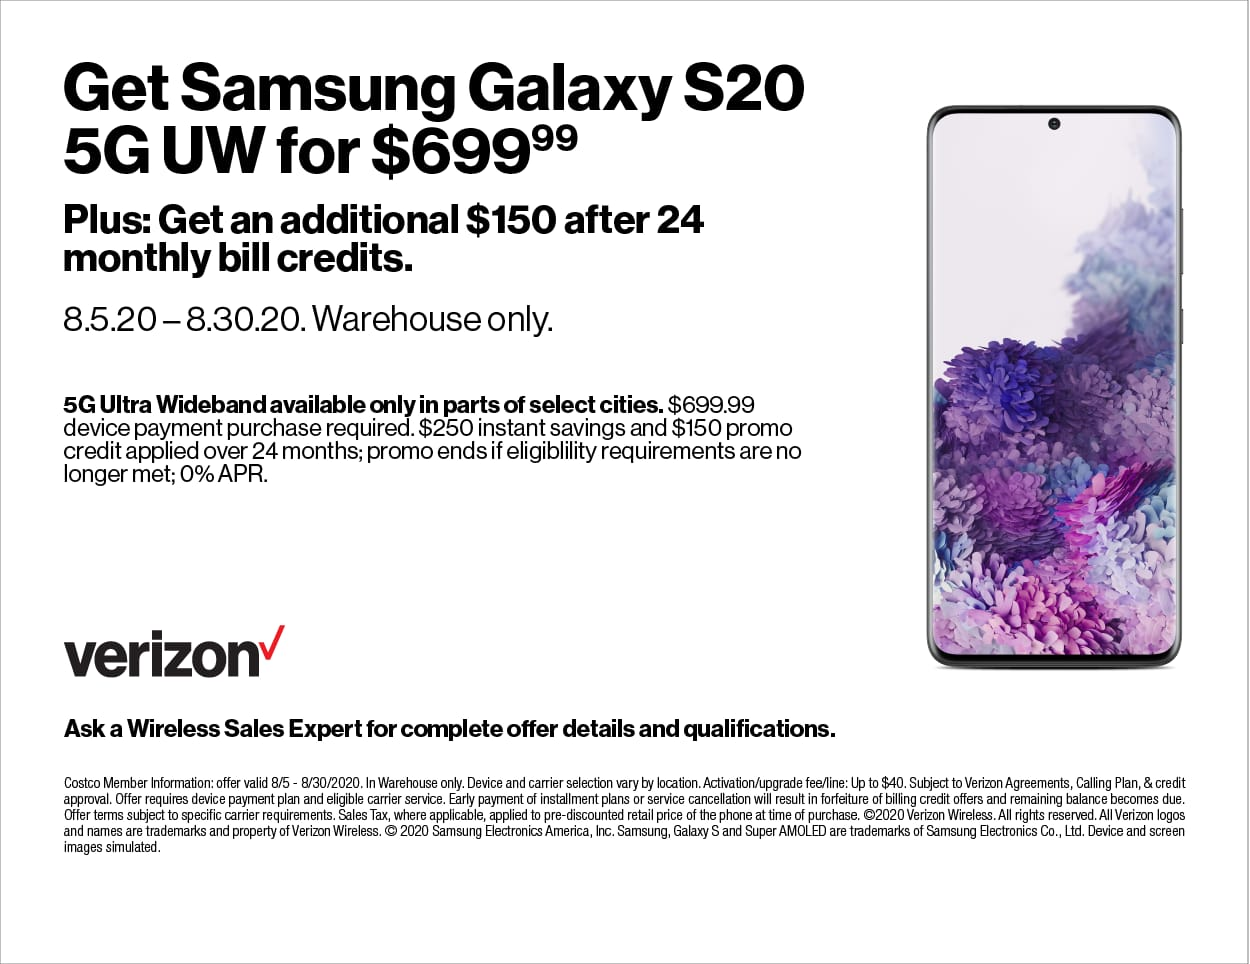 Costco In-Store Offer: Verizon Samsung Galaxy S20 5G UW for $549.99 after $250 Instant Savings and $150 Bill Credit (New + Upgrade Lines)